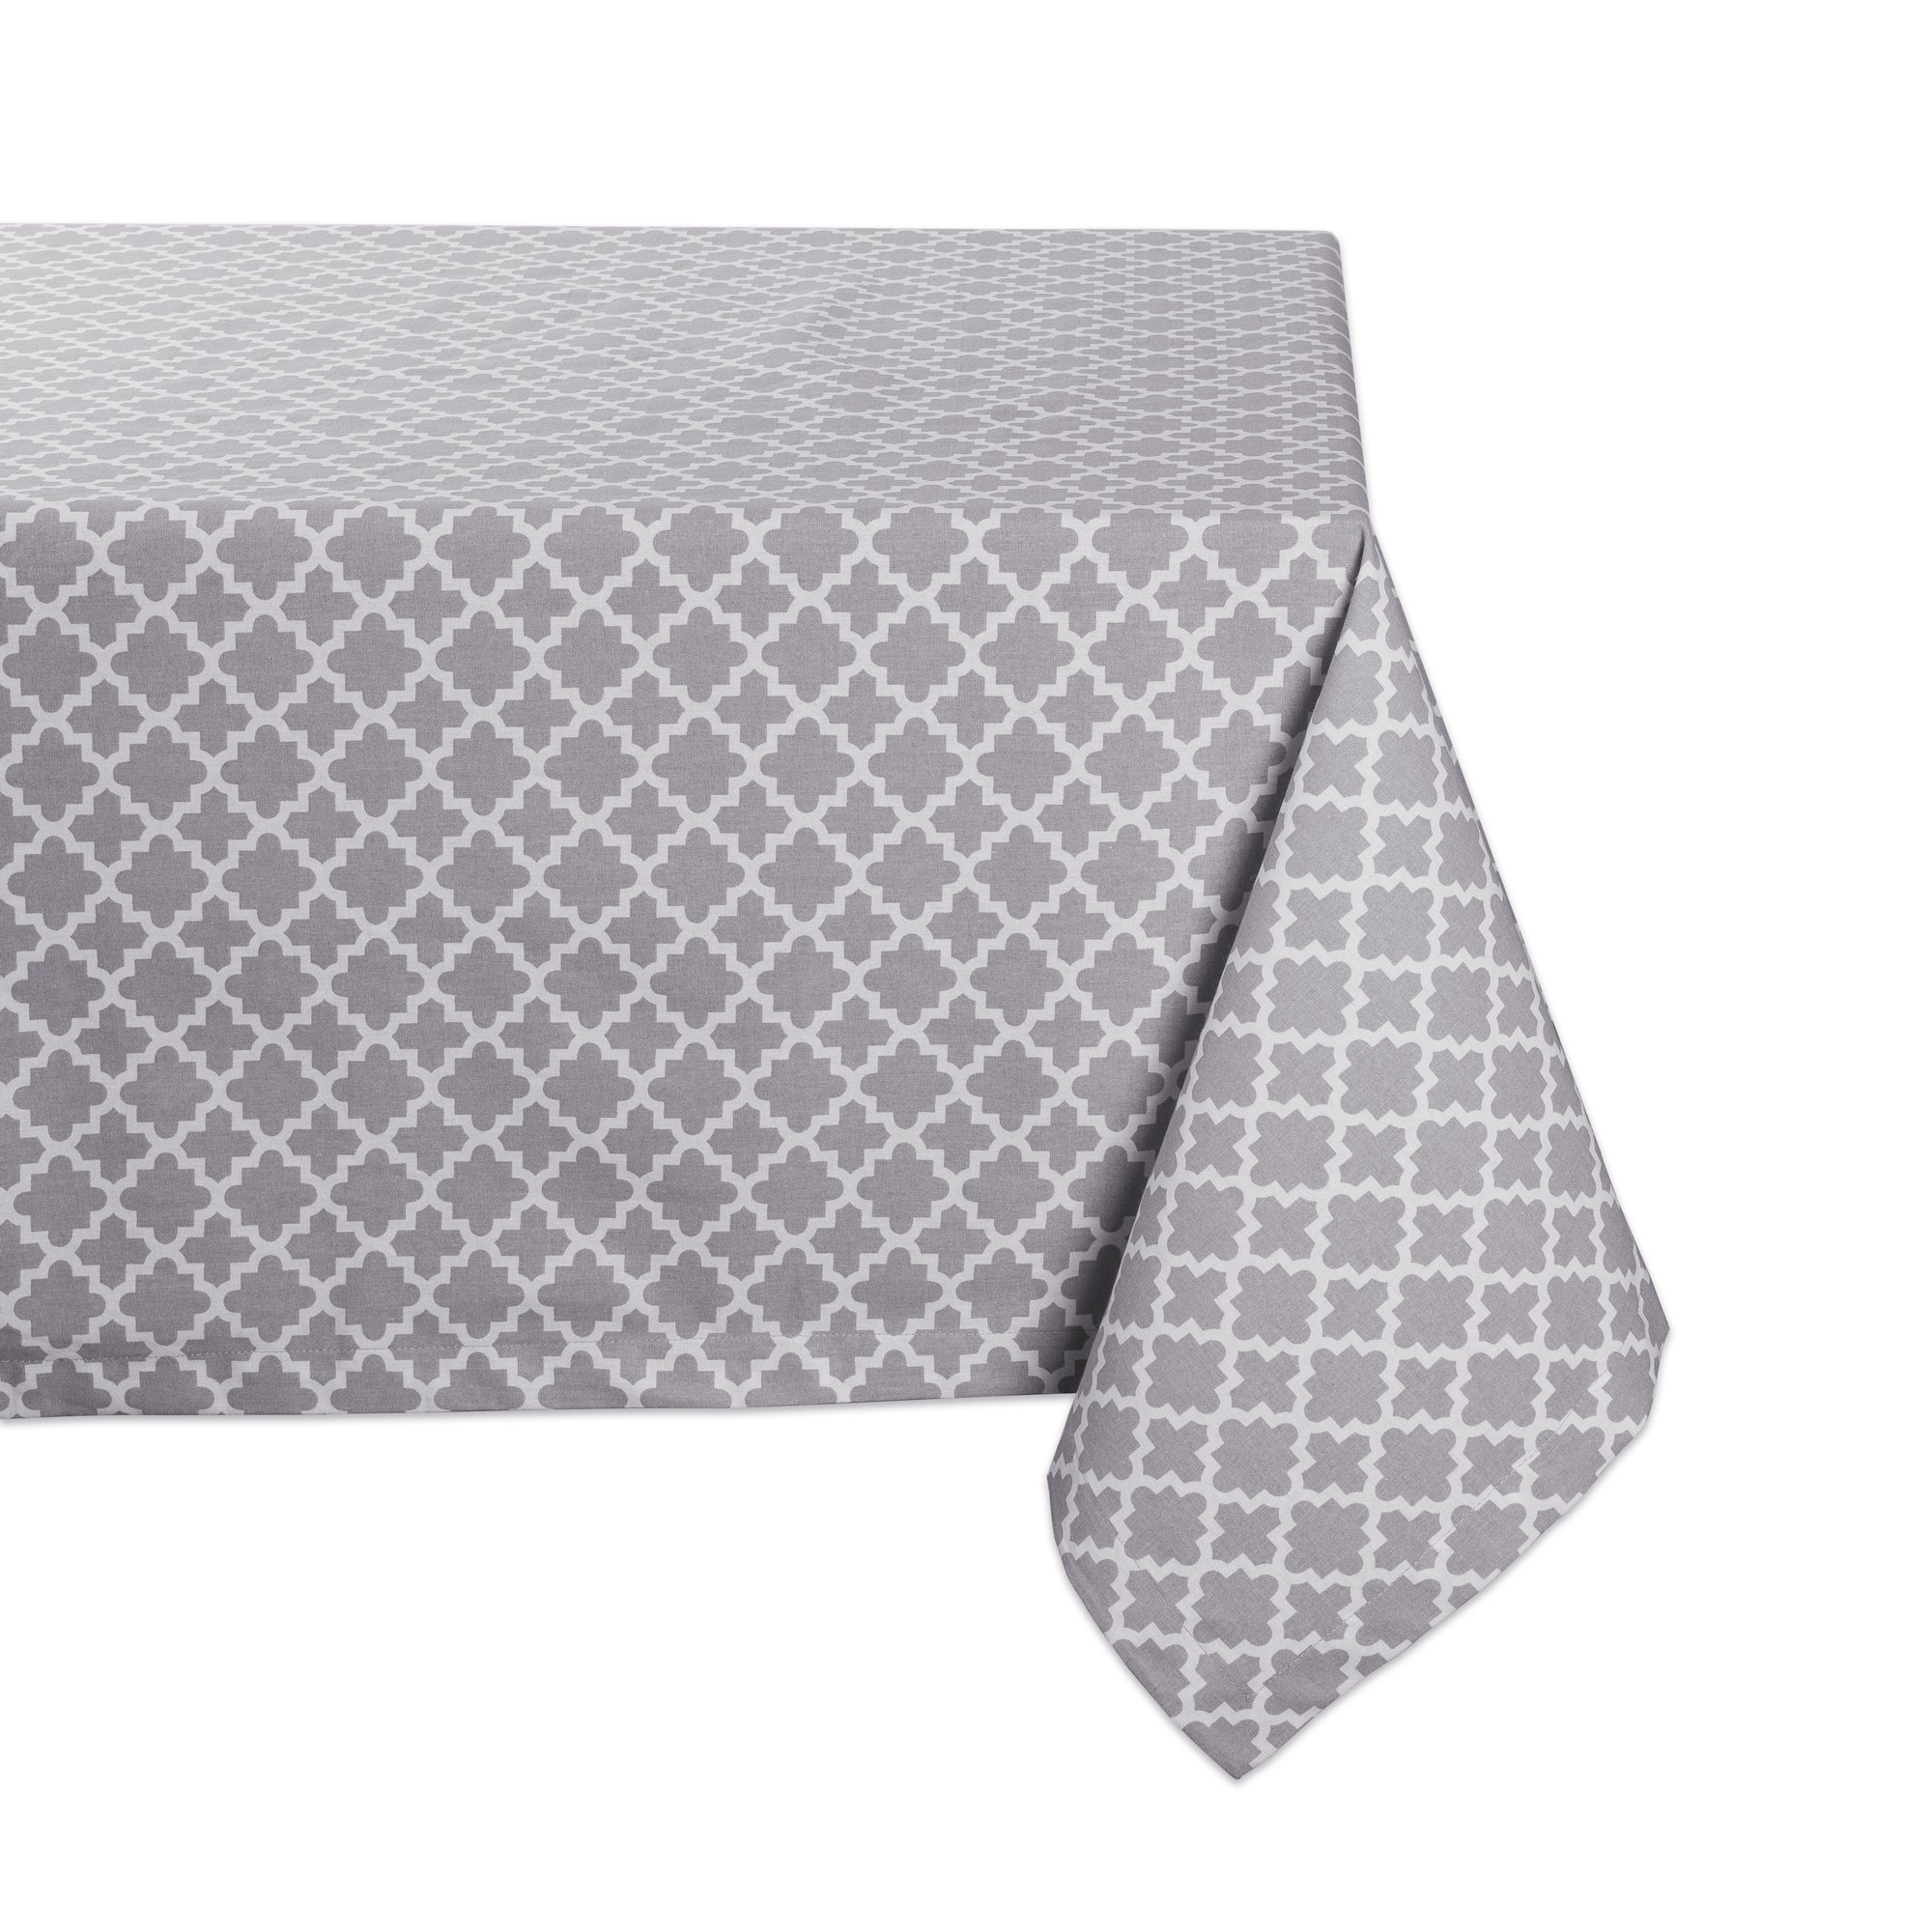 DII Rectangle Lattice Cotton Tablecloth for Weddings, Picnics, Summer Parties and Everyday Use - 60x104'', Gray and White